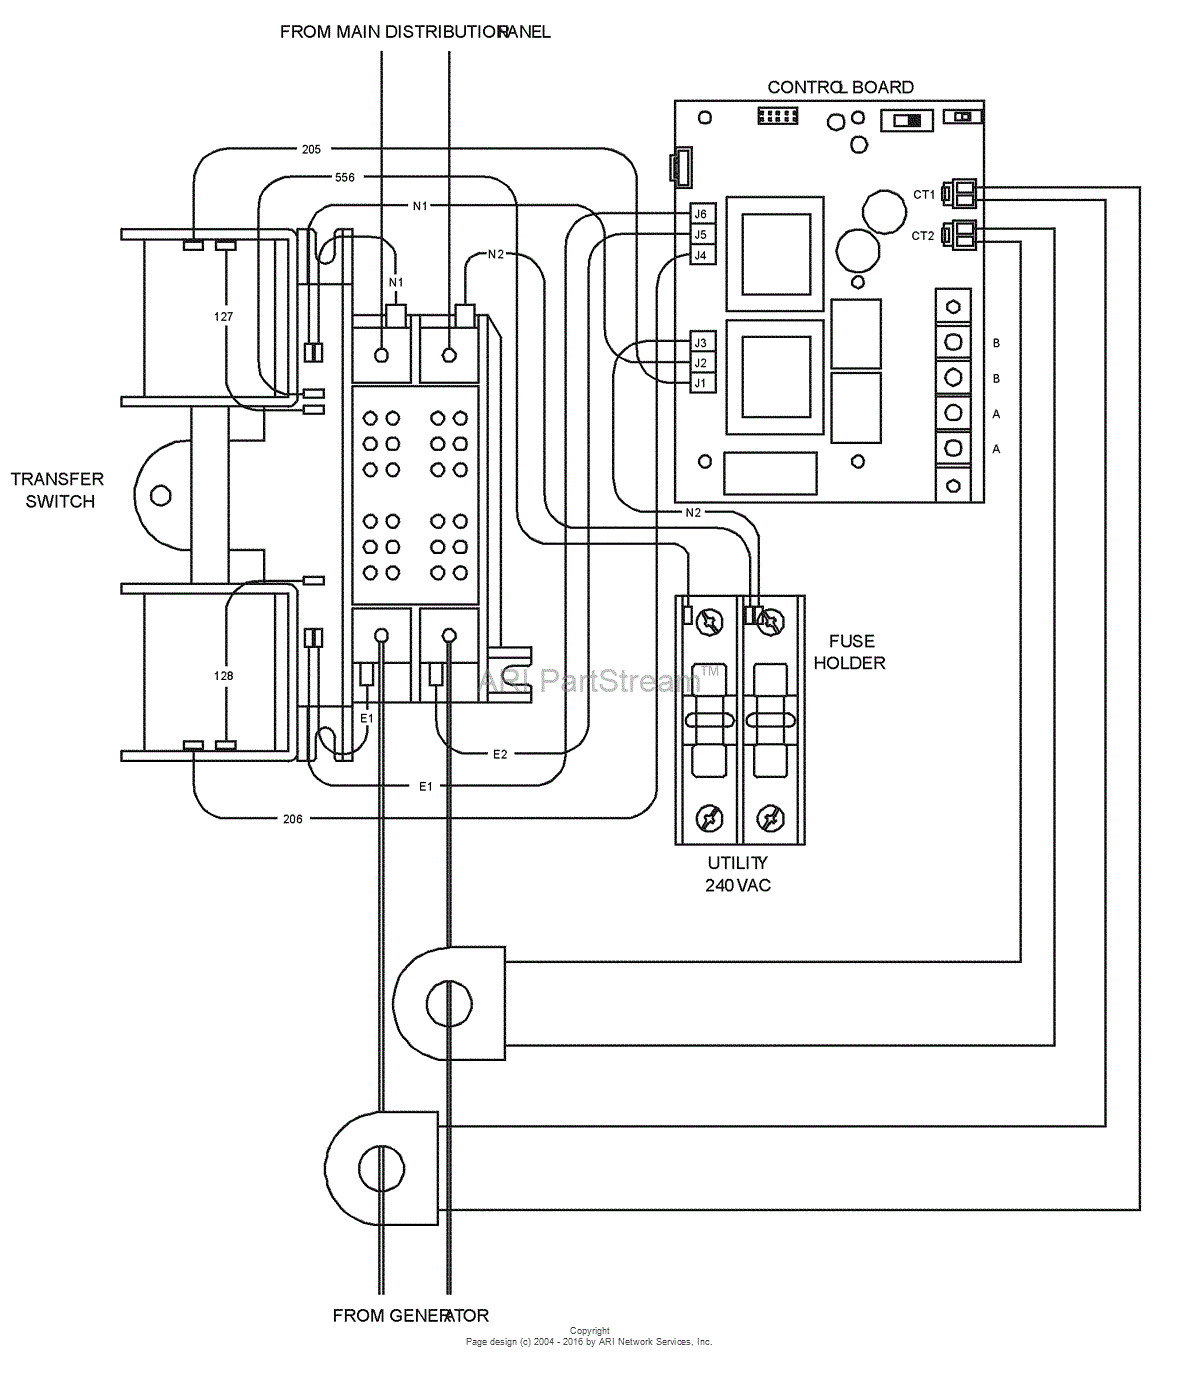 Standby Generator Wiring Diagram Collection Standby Generator Wiring